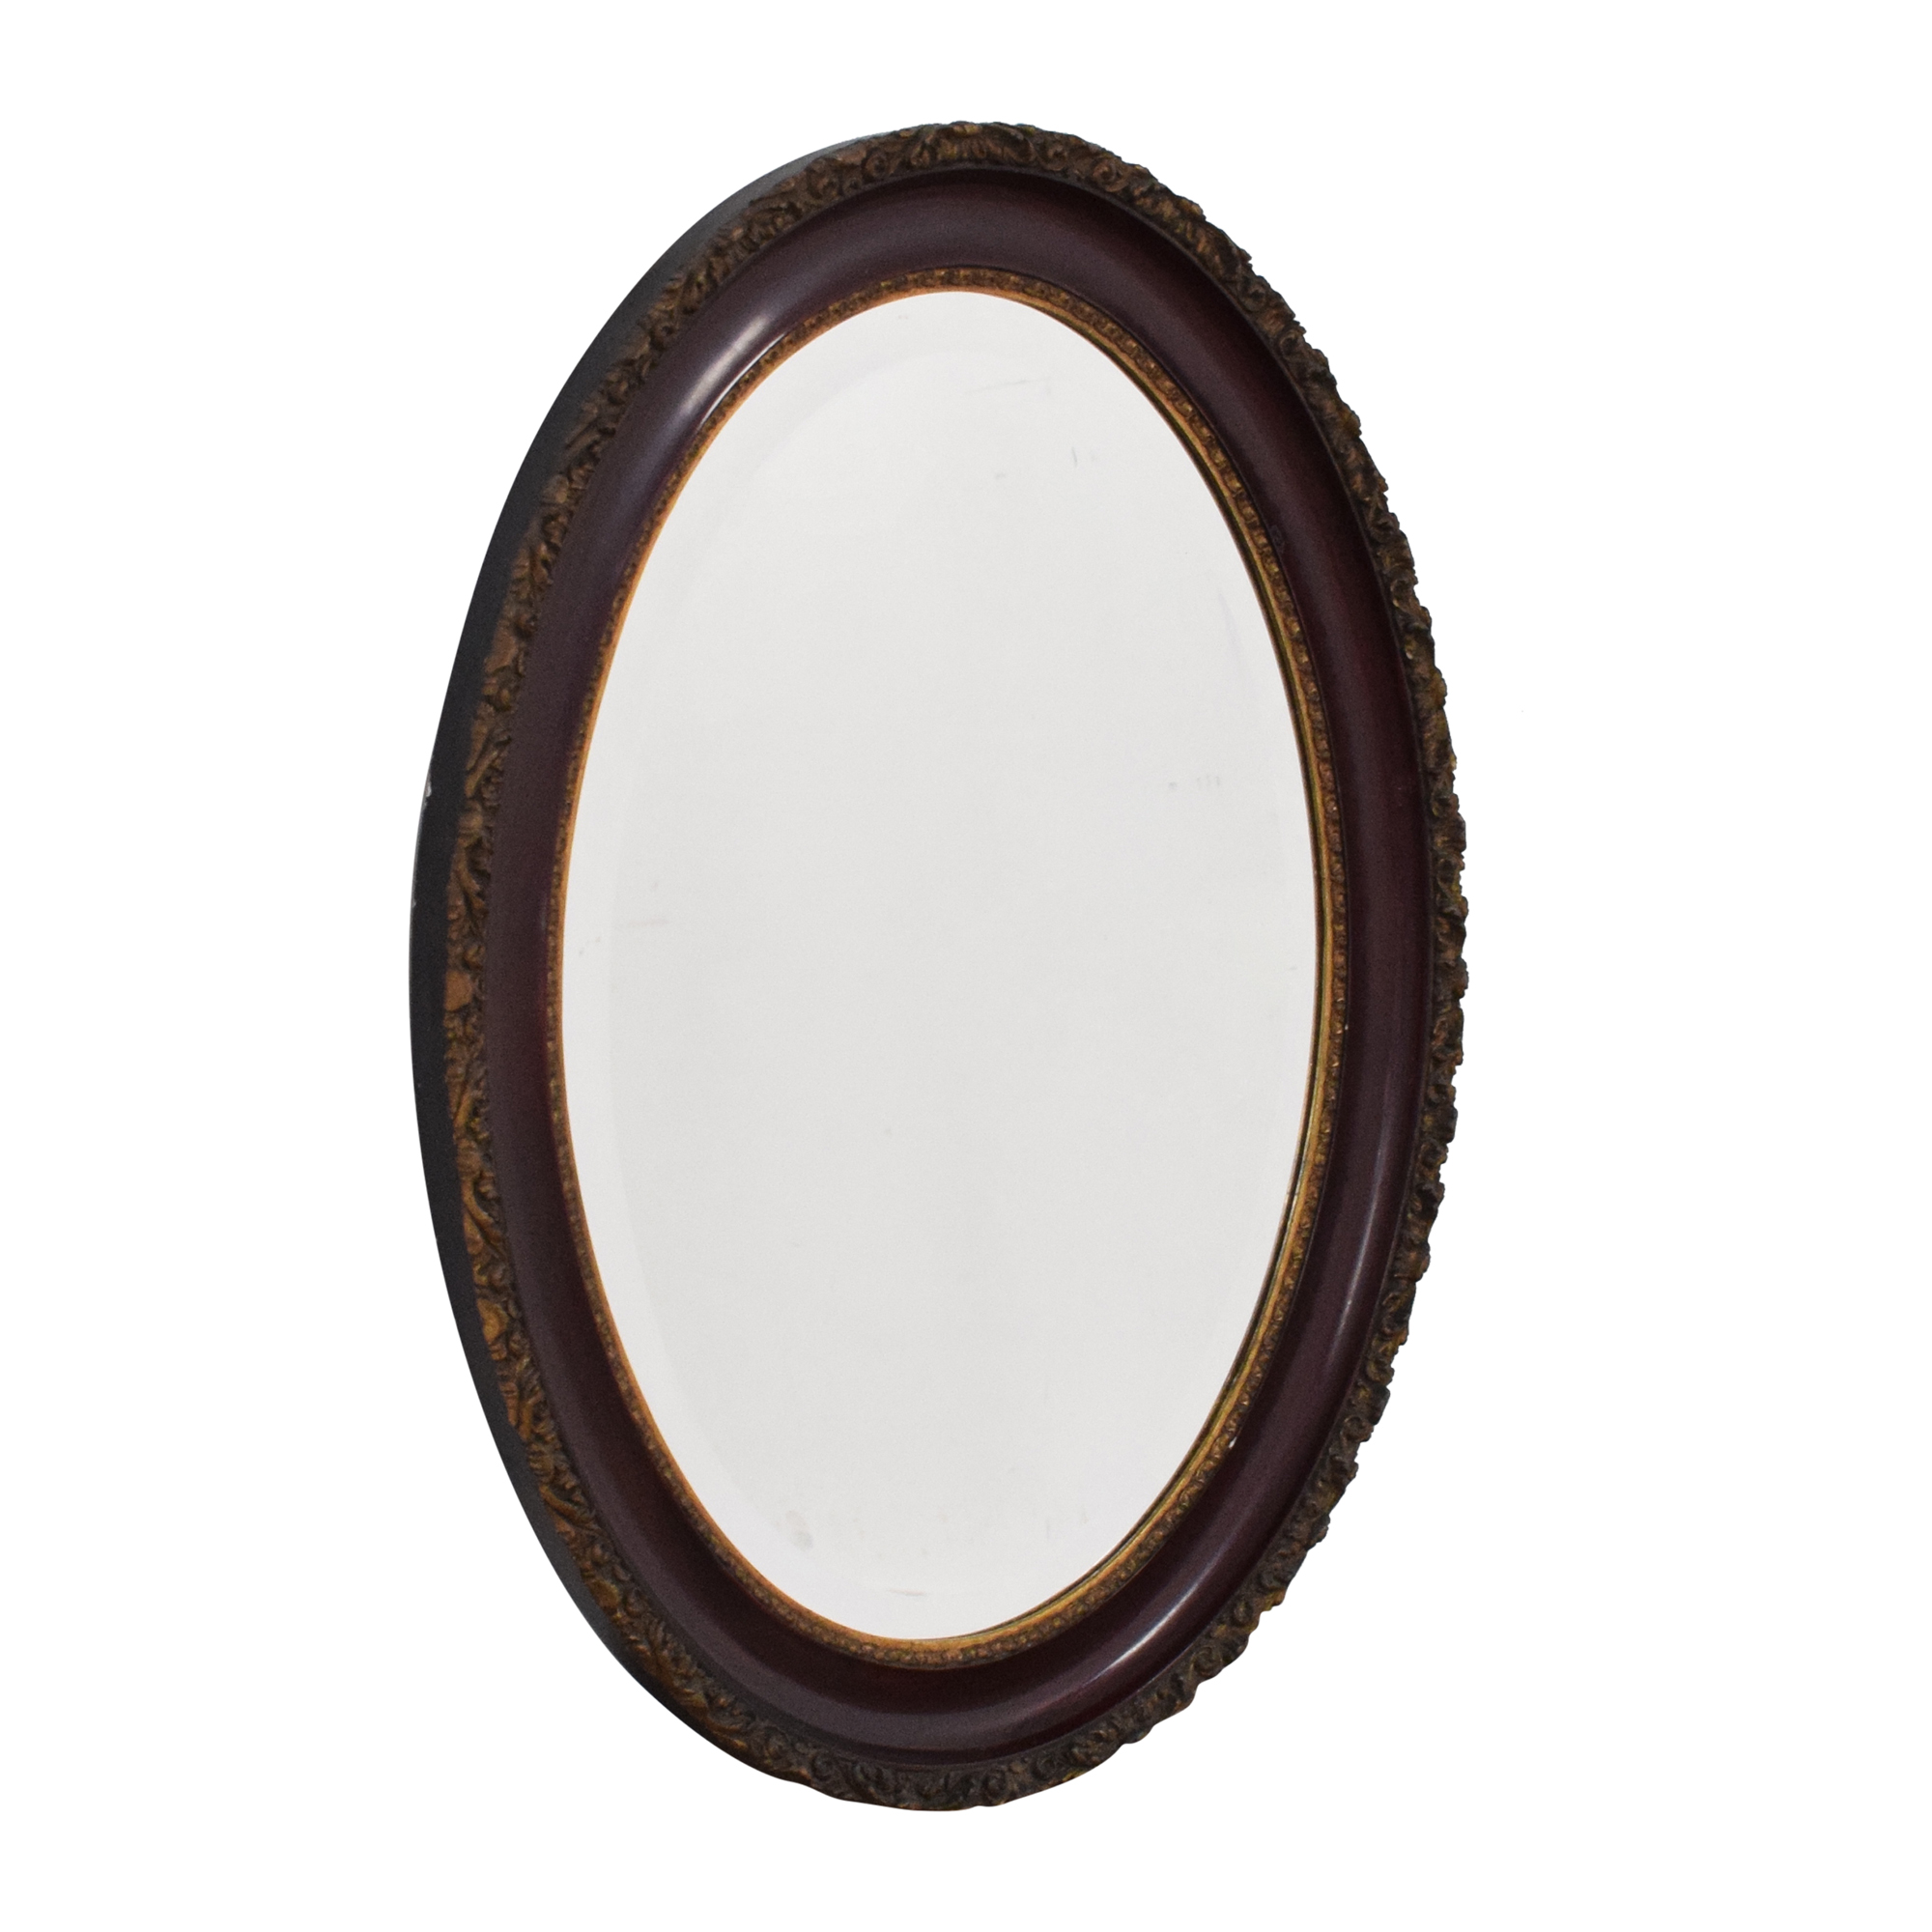 Oval Framed Wall Mirror sale